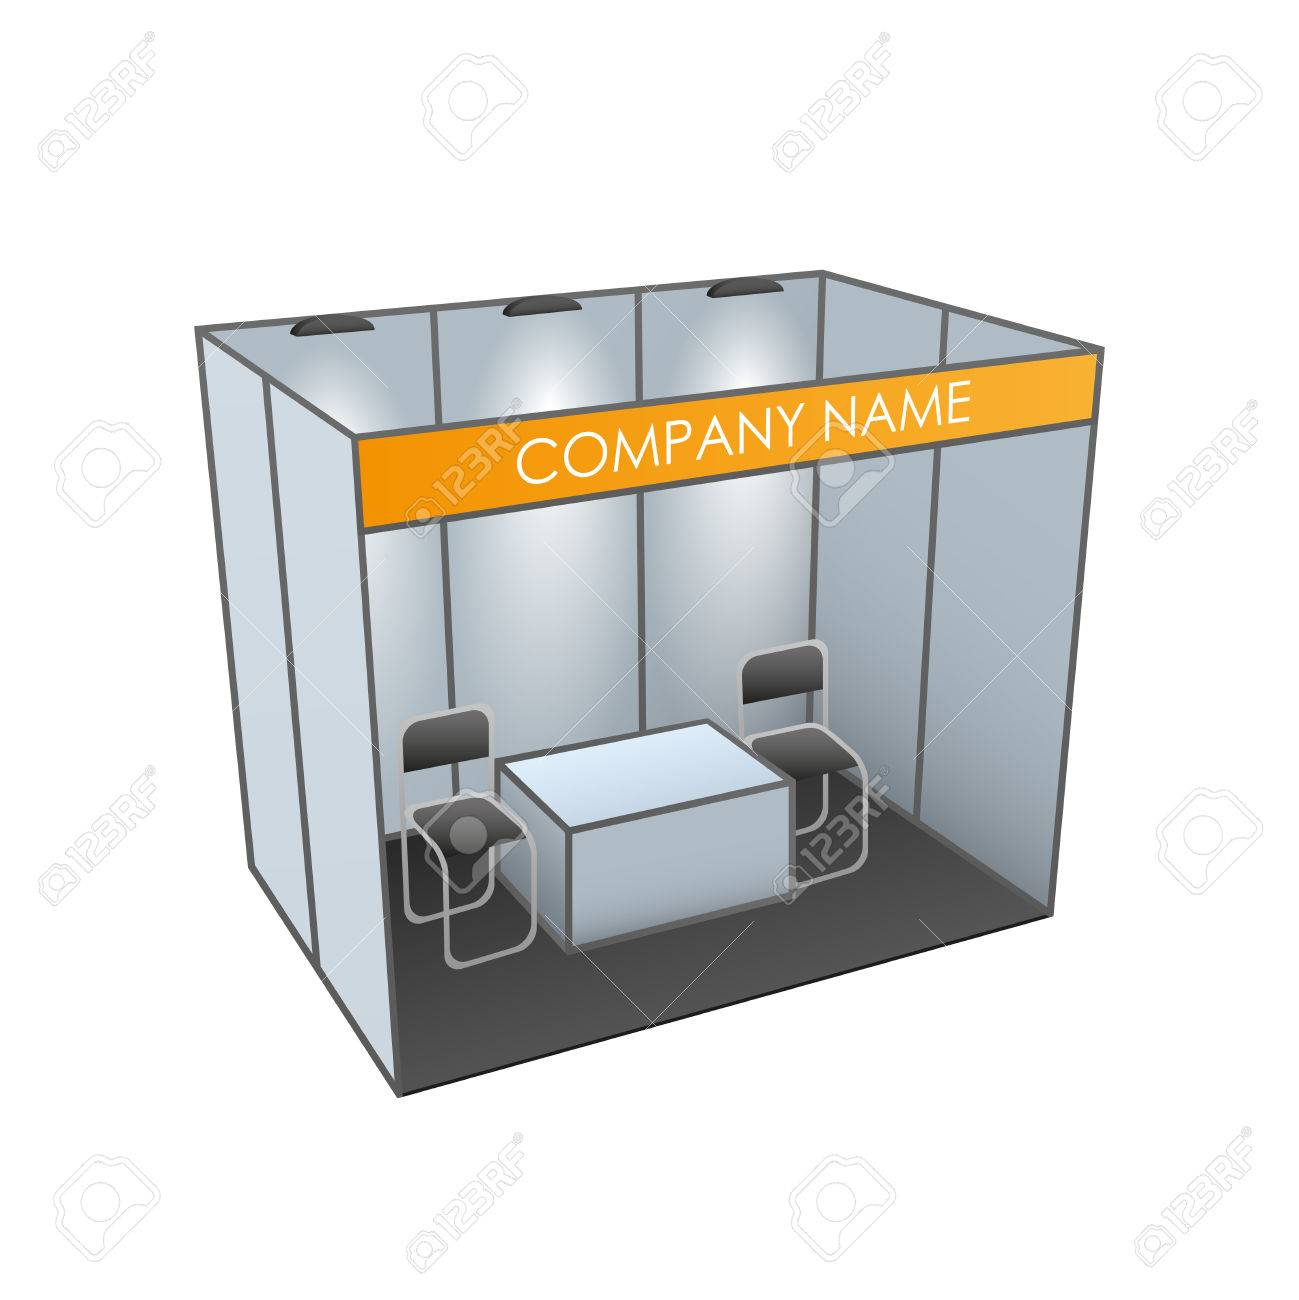 Exhibition Booth Table : Exhibition stand with table and chairs booth template vector